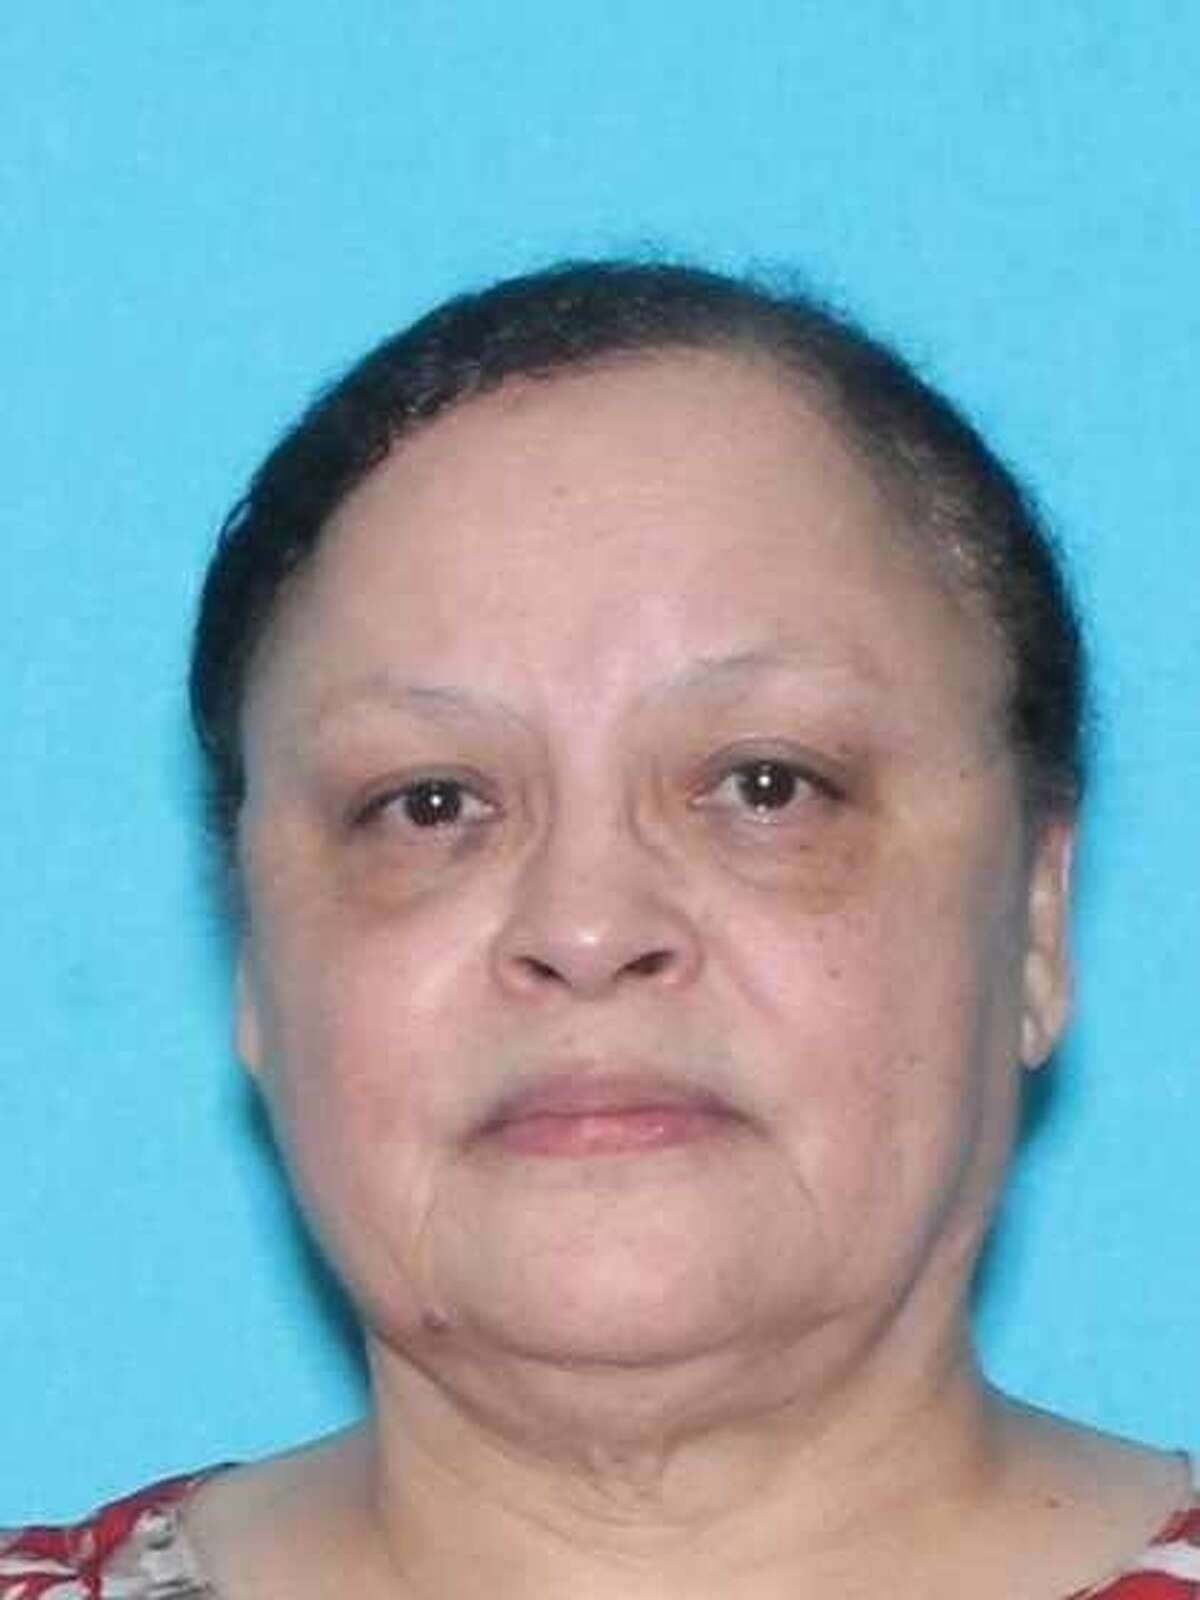 Memorial Villages police are searching for Brenda Floyd, whom they allege is the suspect seen striking an elderly patient in a video shared by Crime Stoppers. Police say the incident occurred Jan. 1, 2017.